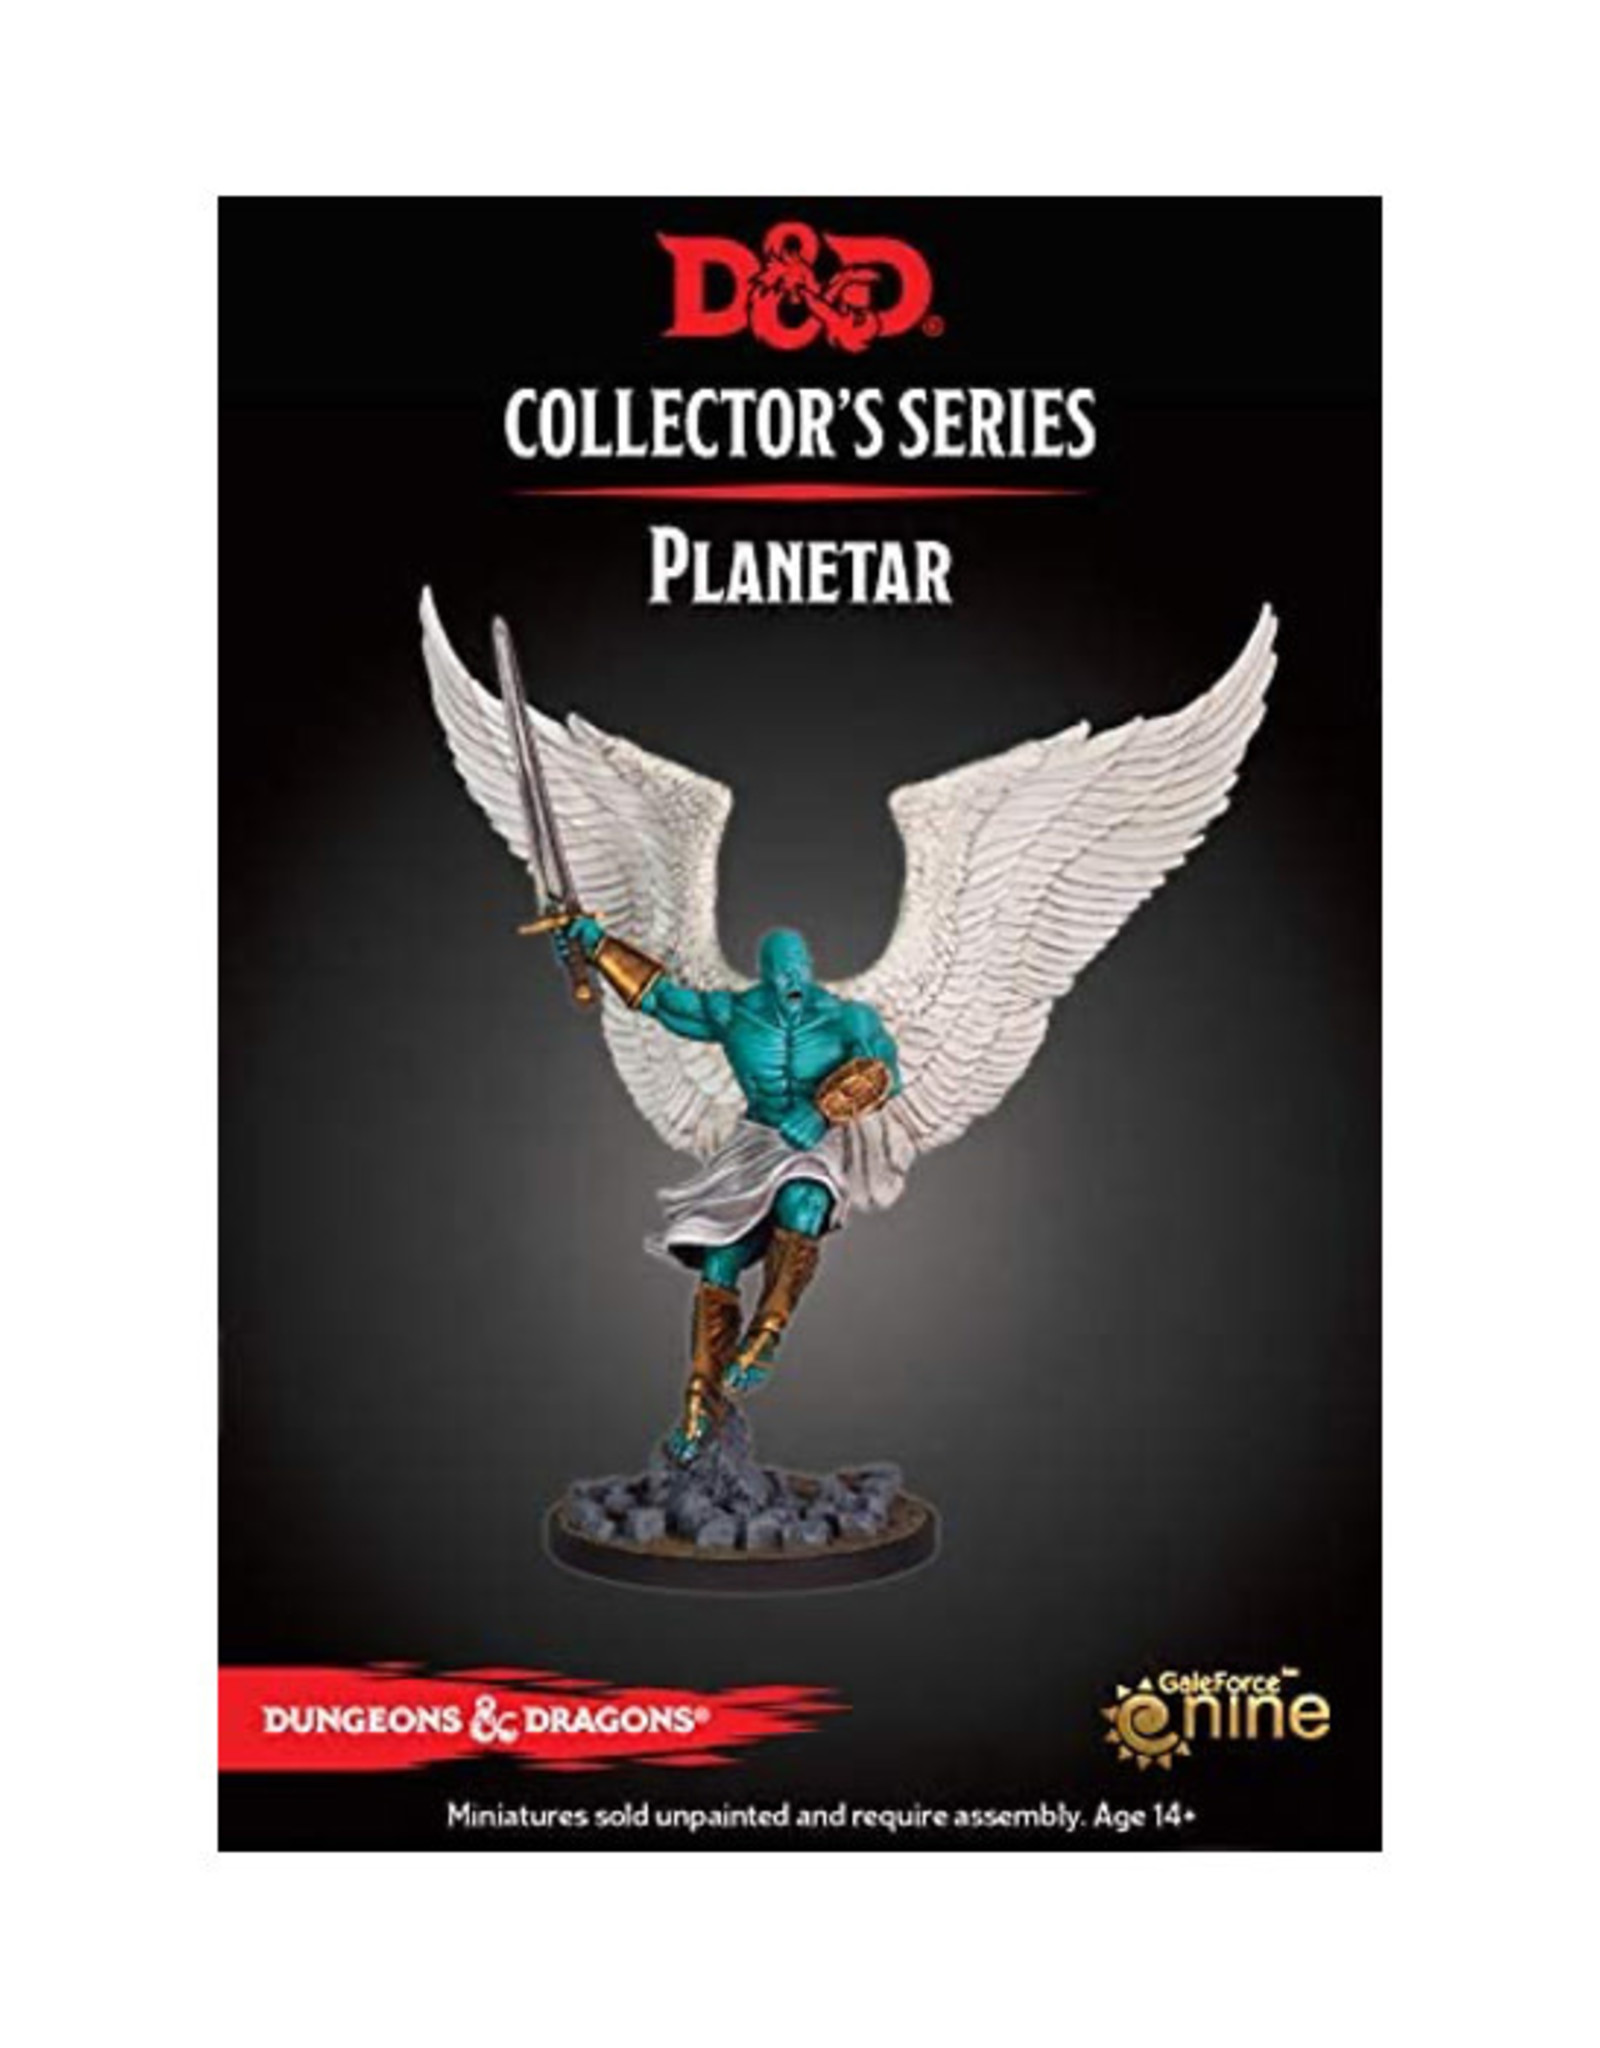 Dungeons & Dragons Dungeons & Dragons: Collector's Series - Dungeon of the Mad Mage - Planetar